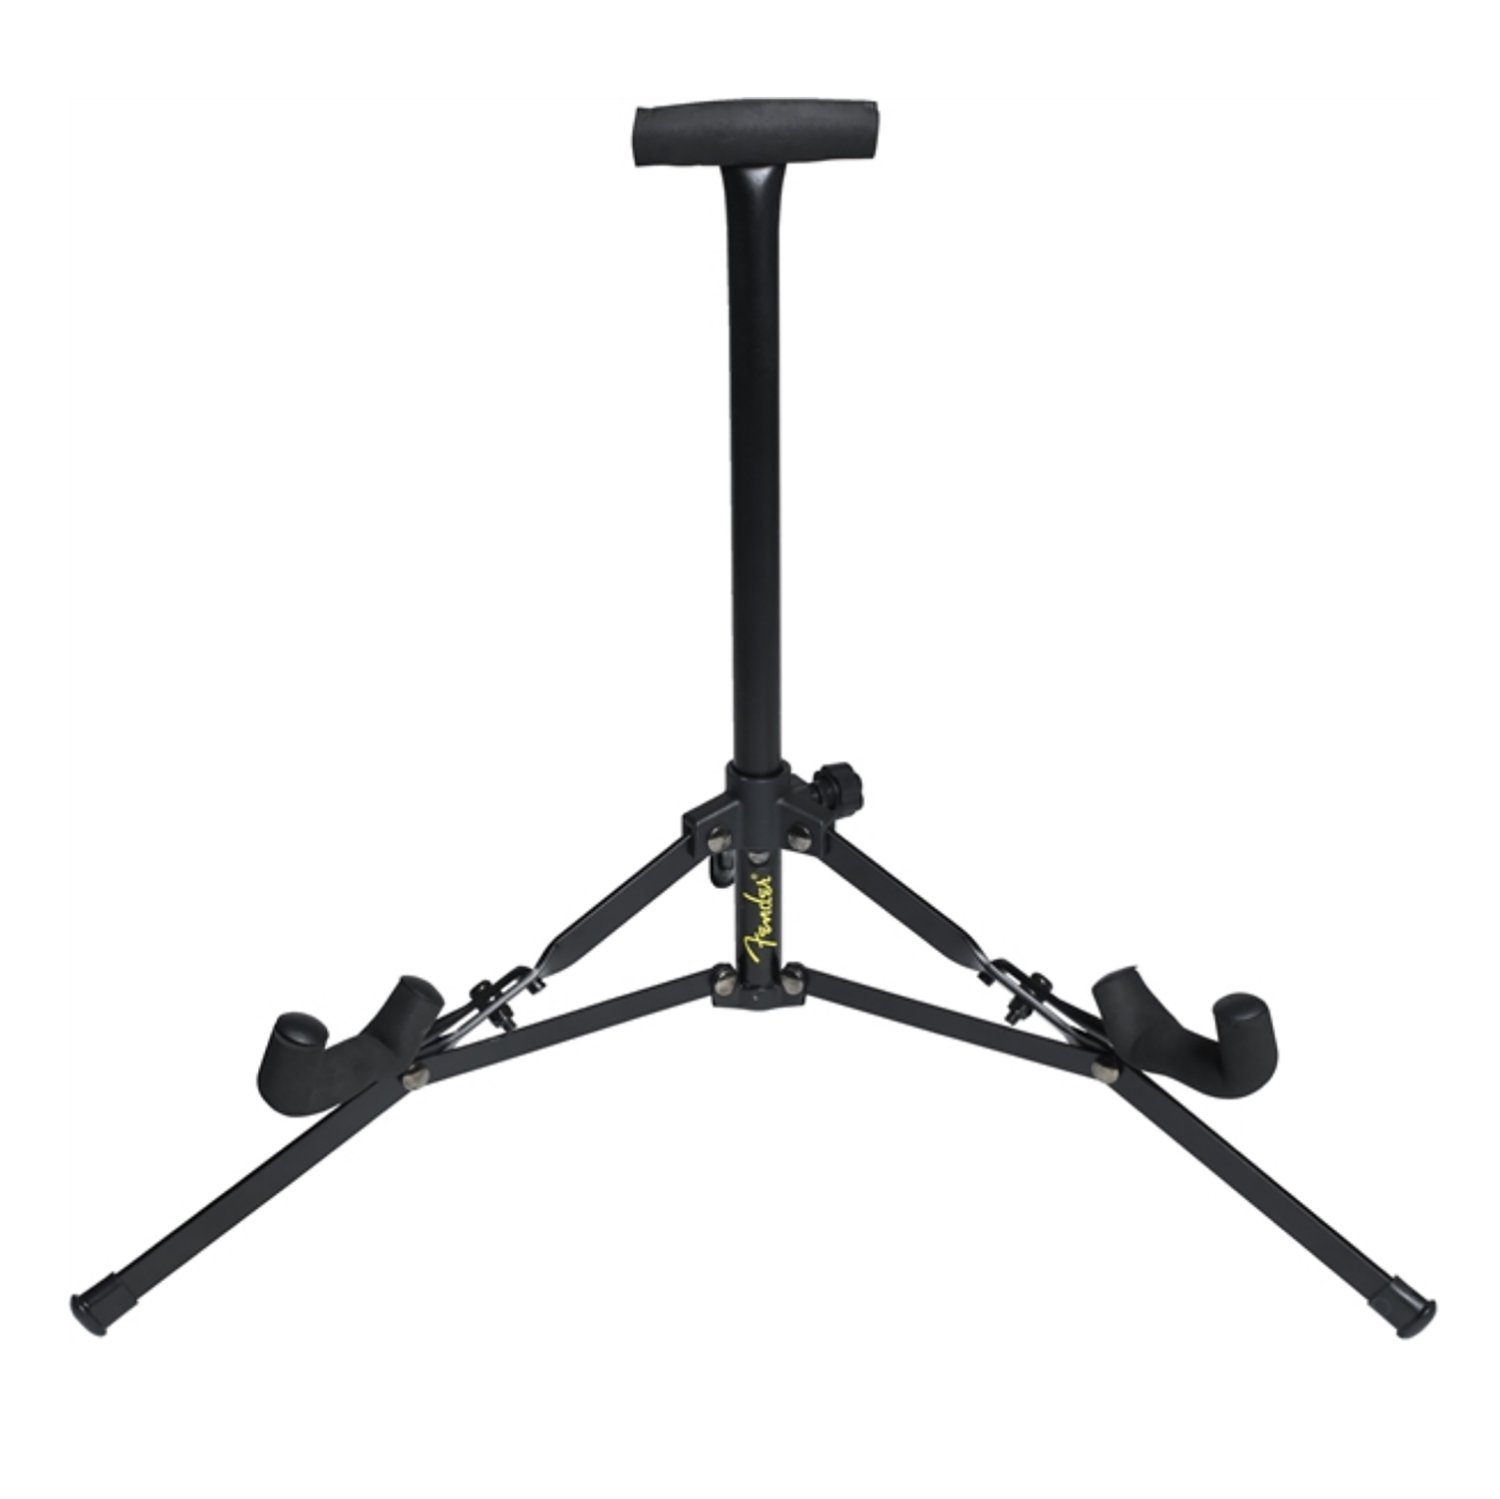 FENDER MINI FOLDING GUITAR STAND FOR ELECTRIC (TSFA)